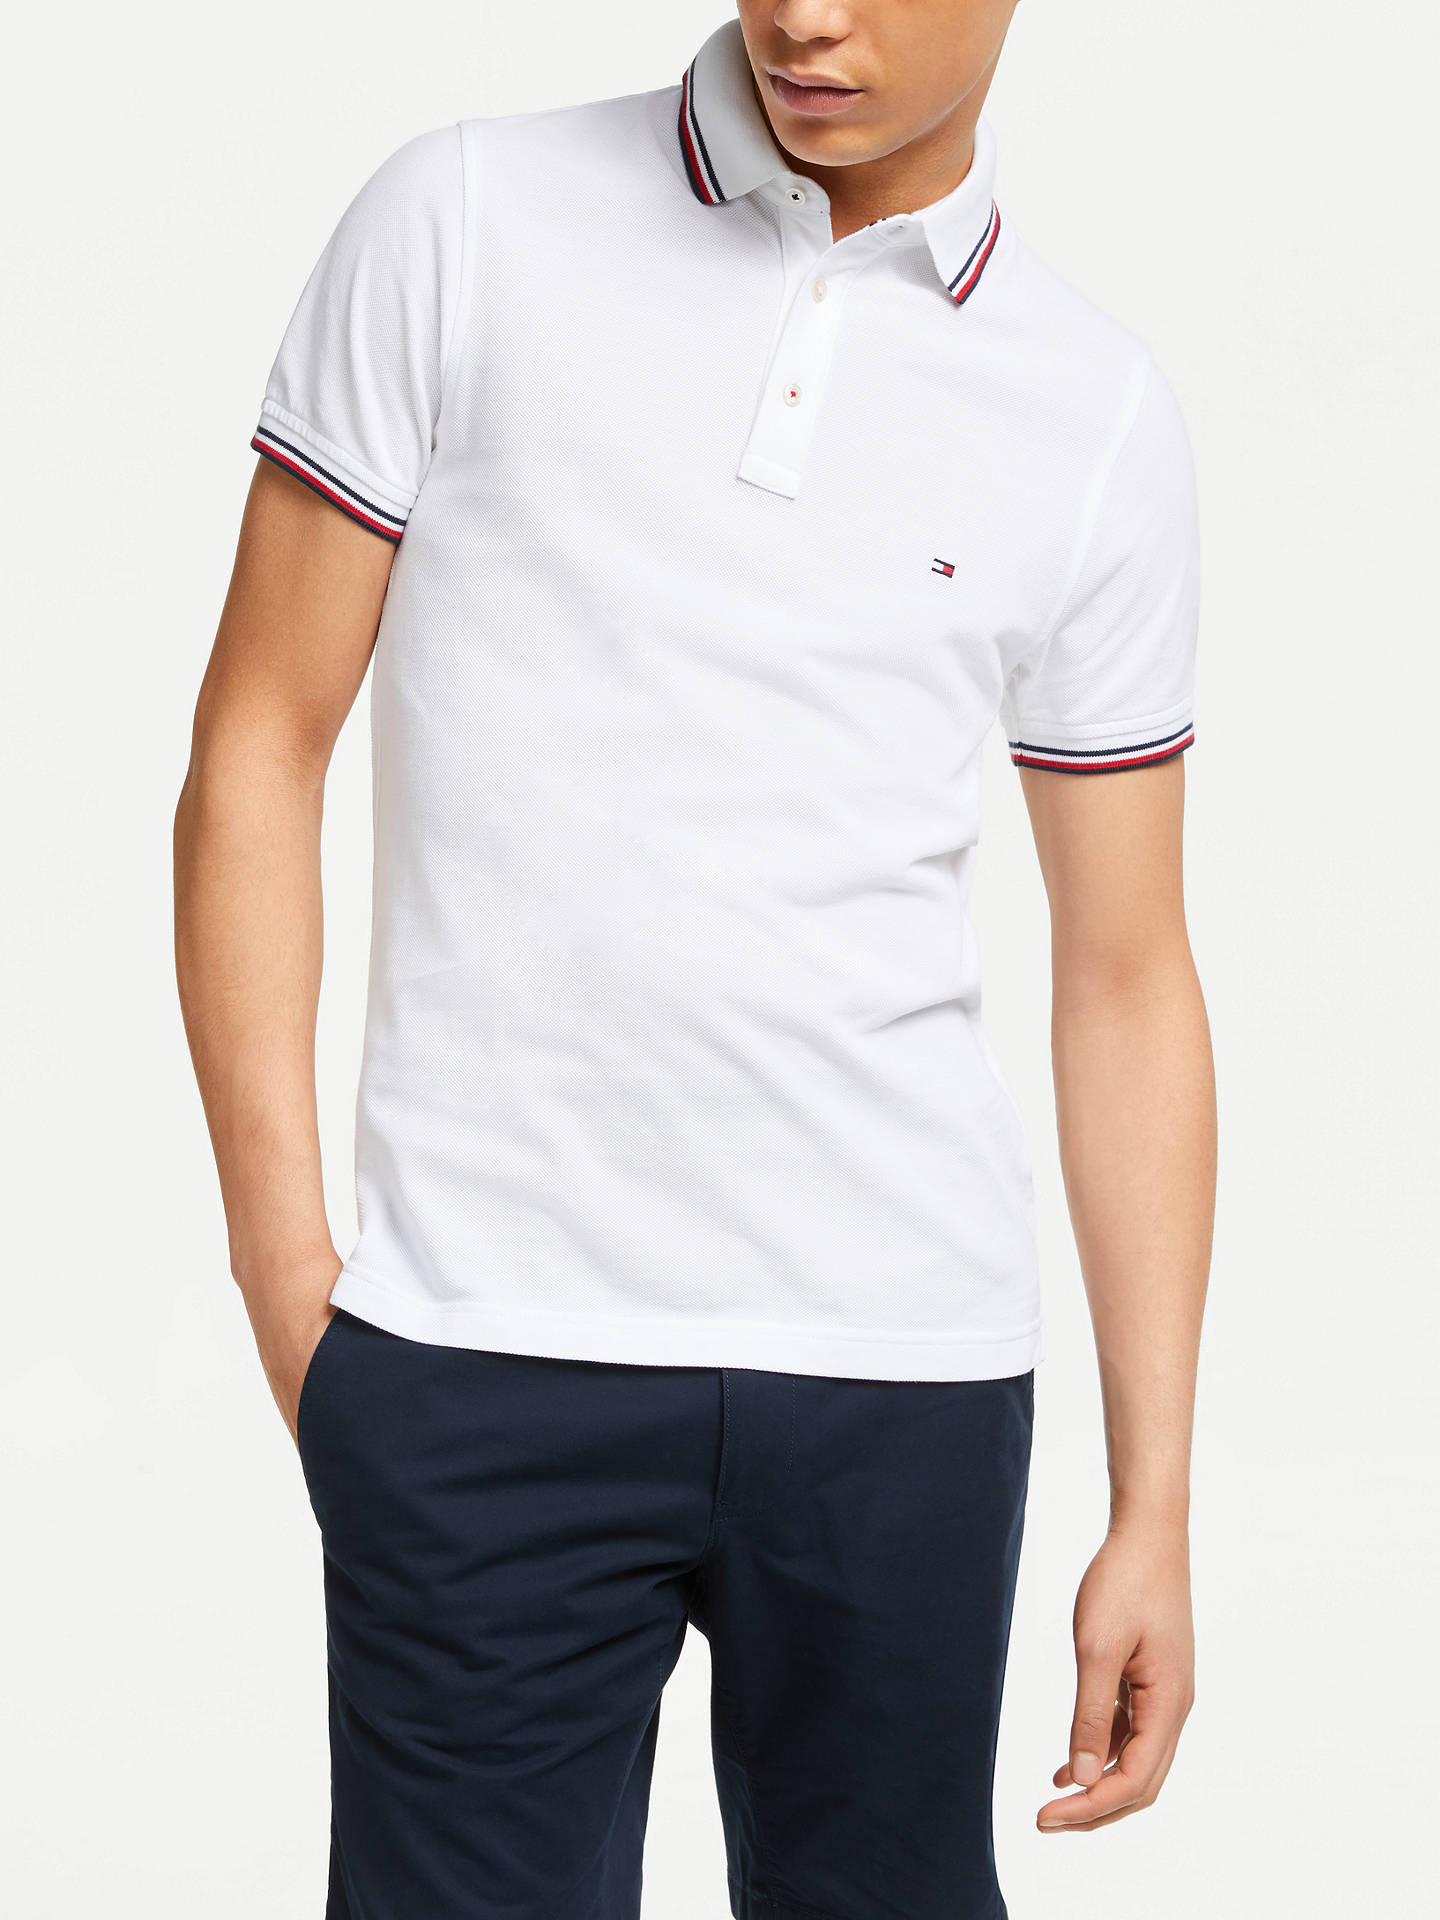 0d49c703 Buy Tommy Hilfiger Tipped Slim Fit Polo Shirt, Bright White, S Online at  johnlewis ...